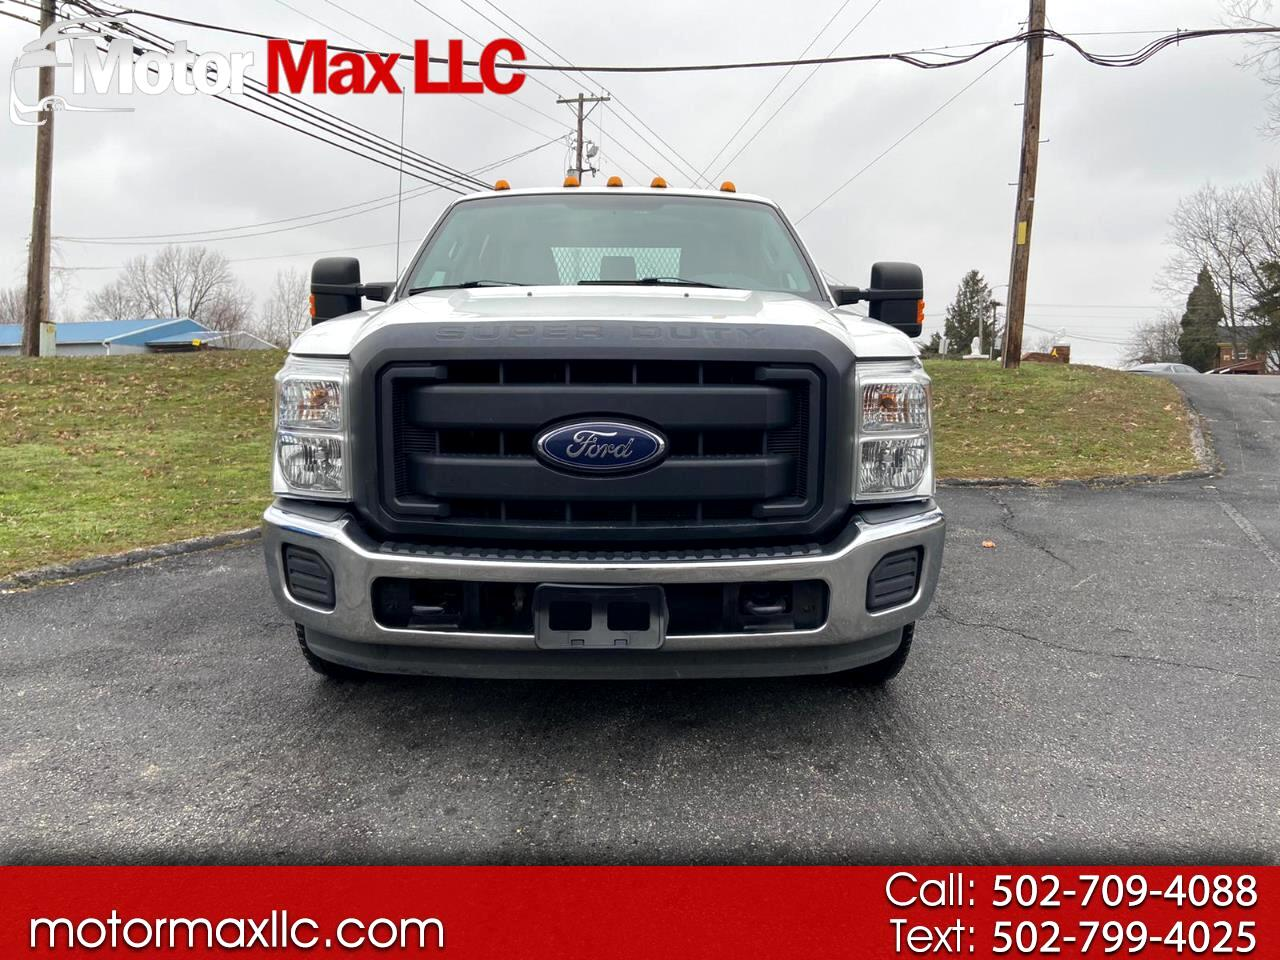 Ford F-350 SD XLT Crew Cab Long Bed DRW 2WD 2015